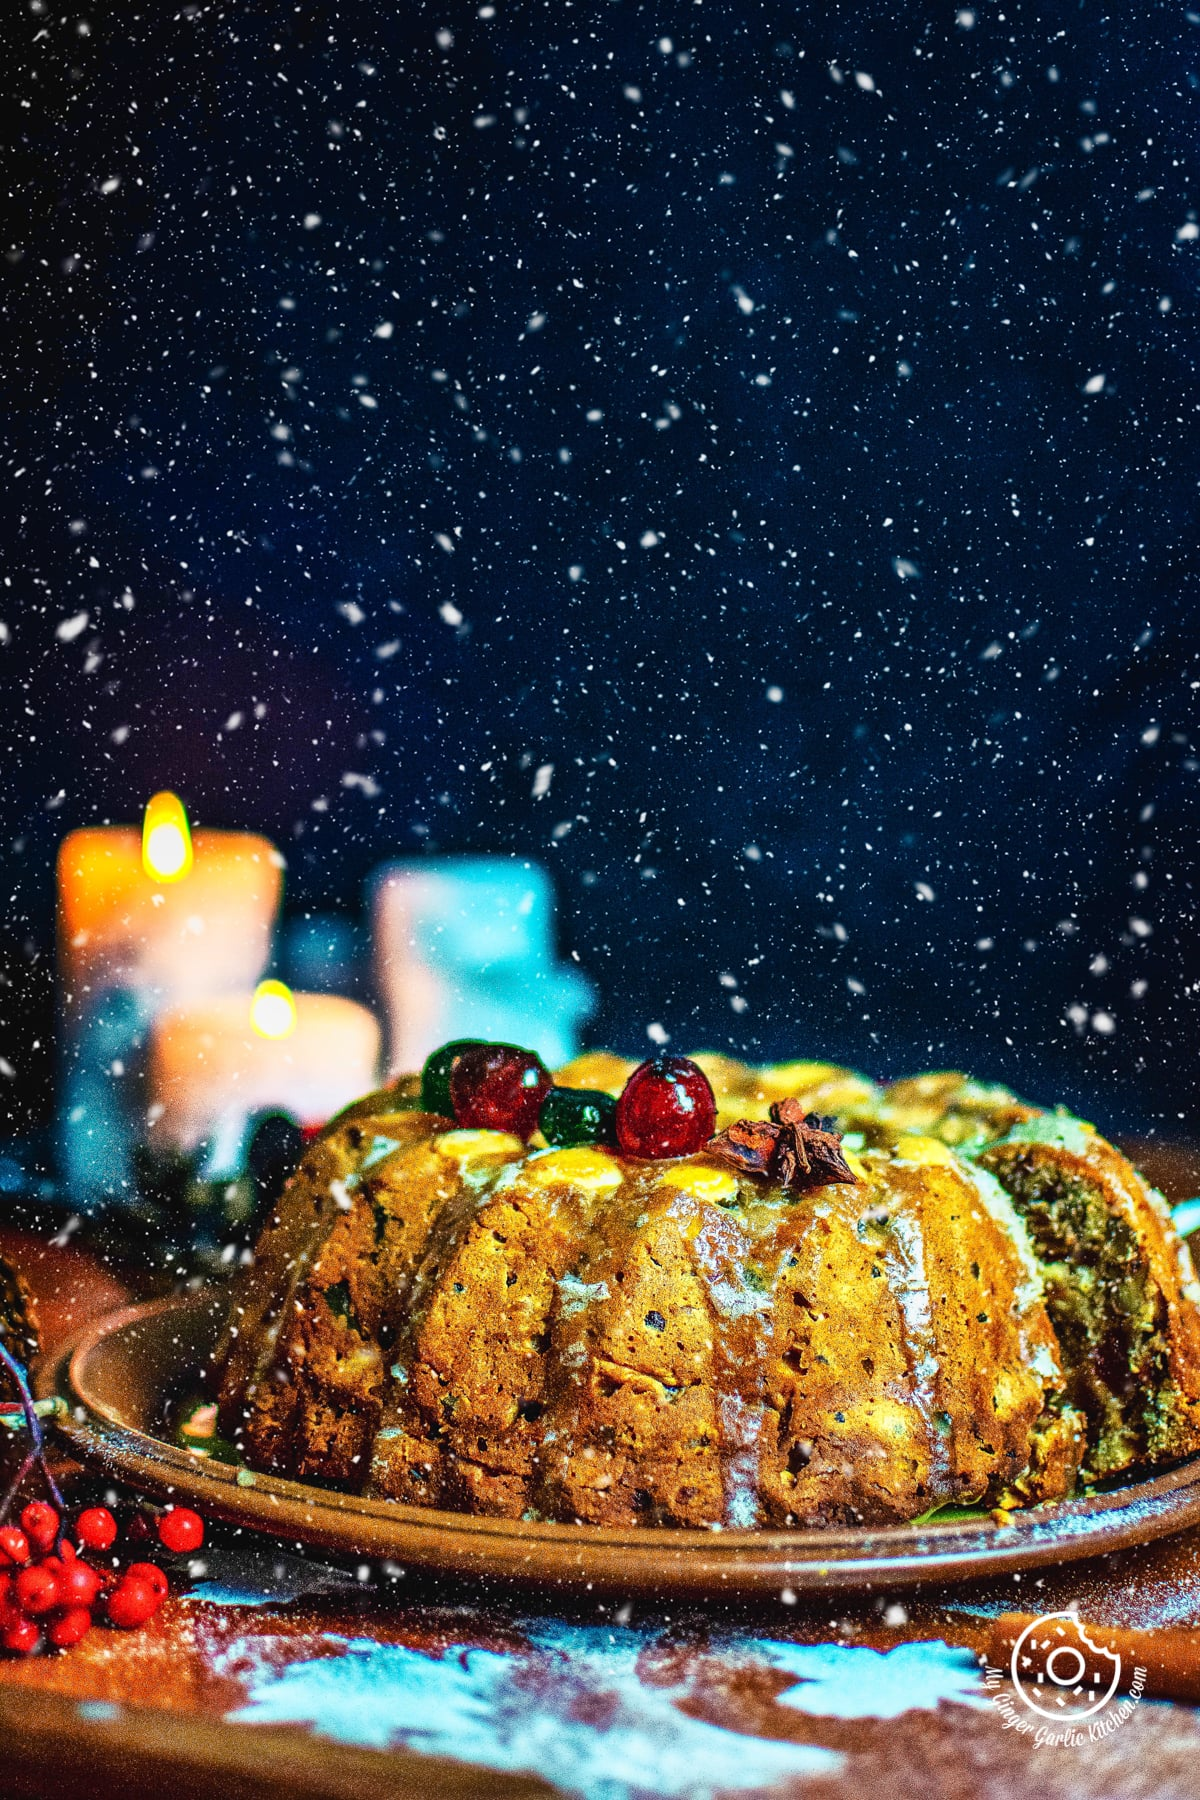 beautiful snow flakes falling on a fruit cake